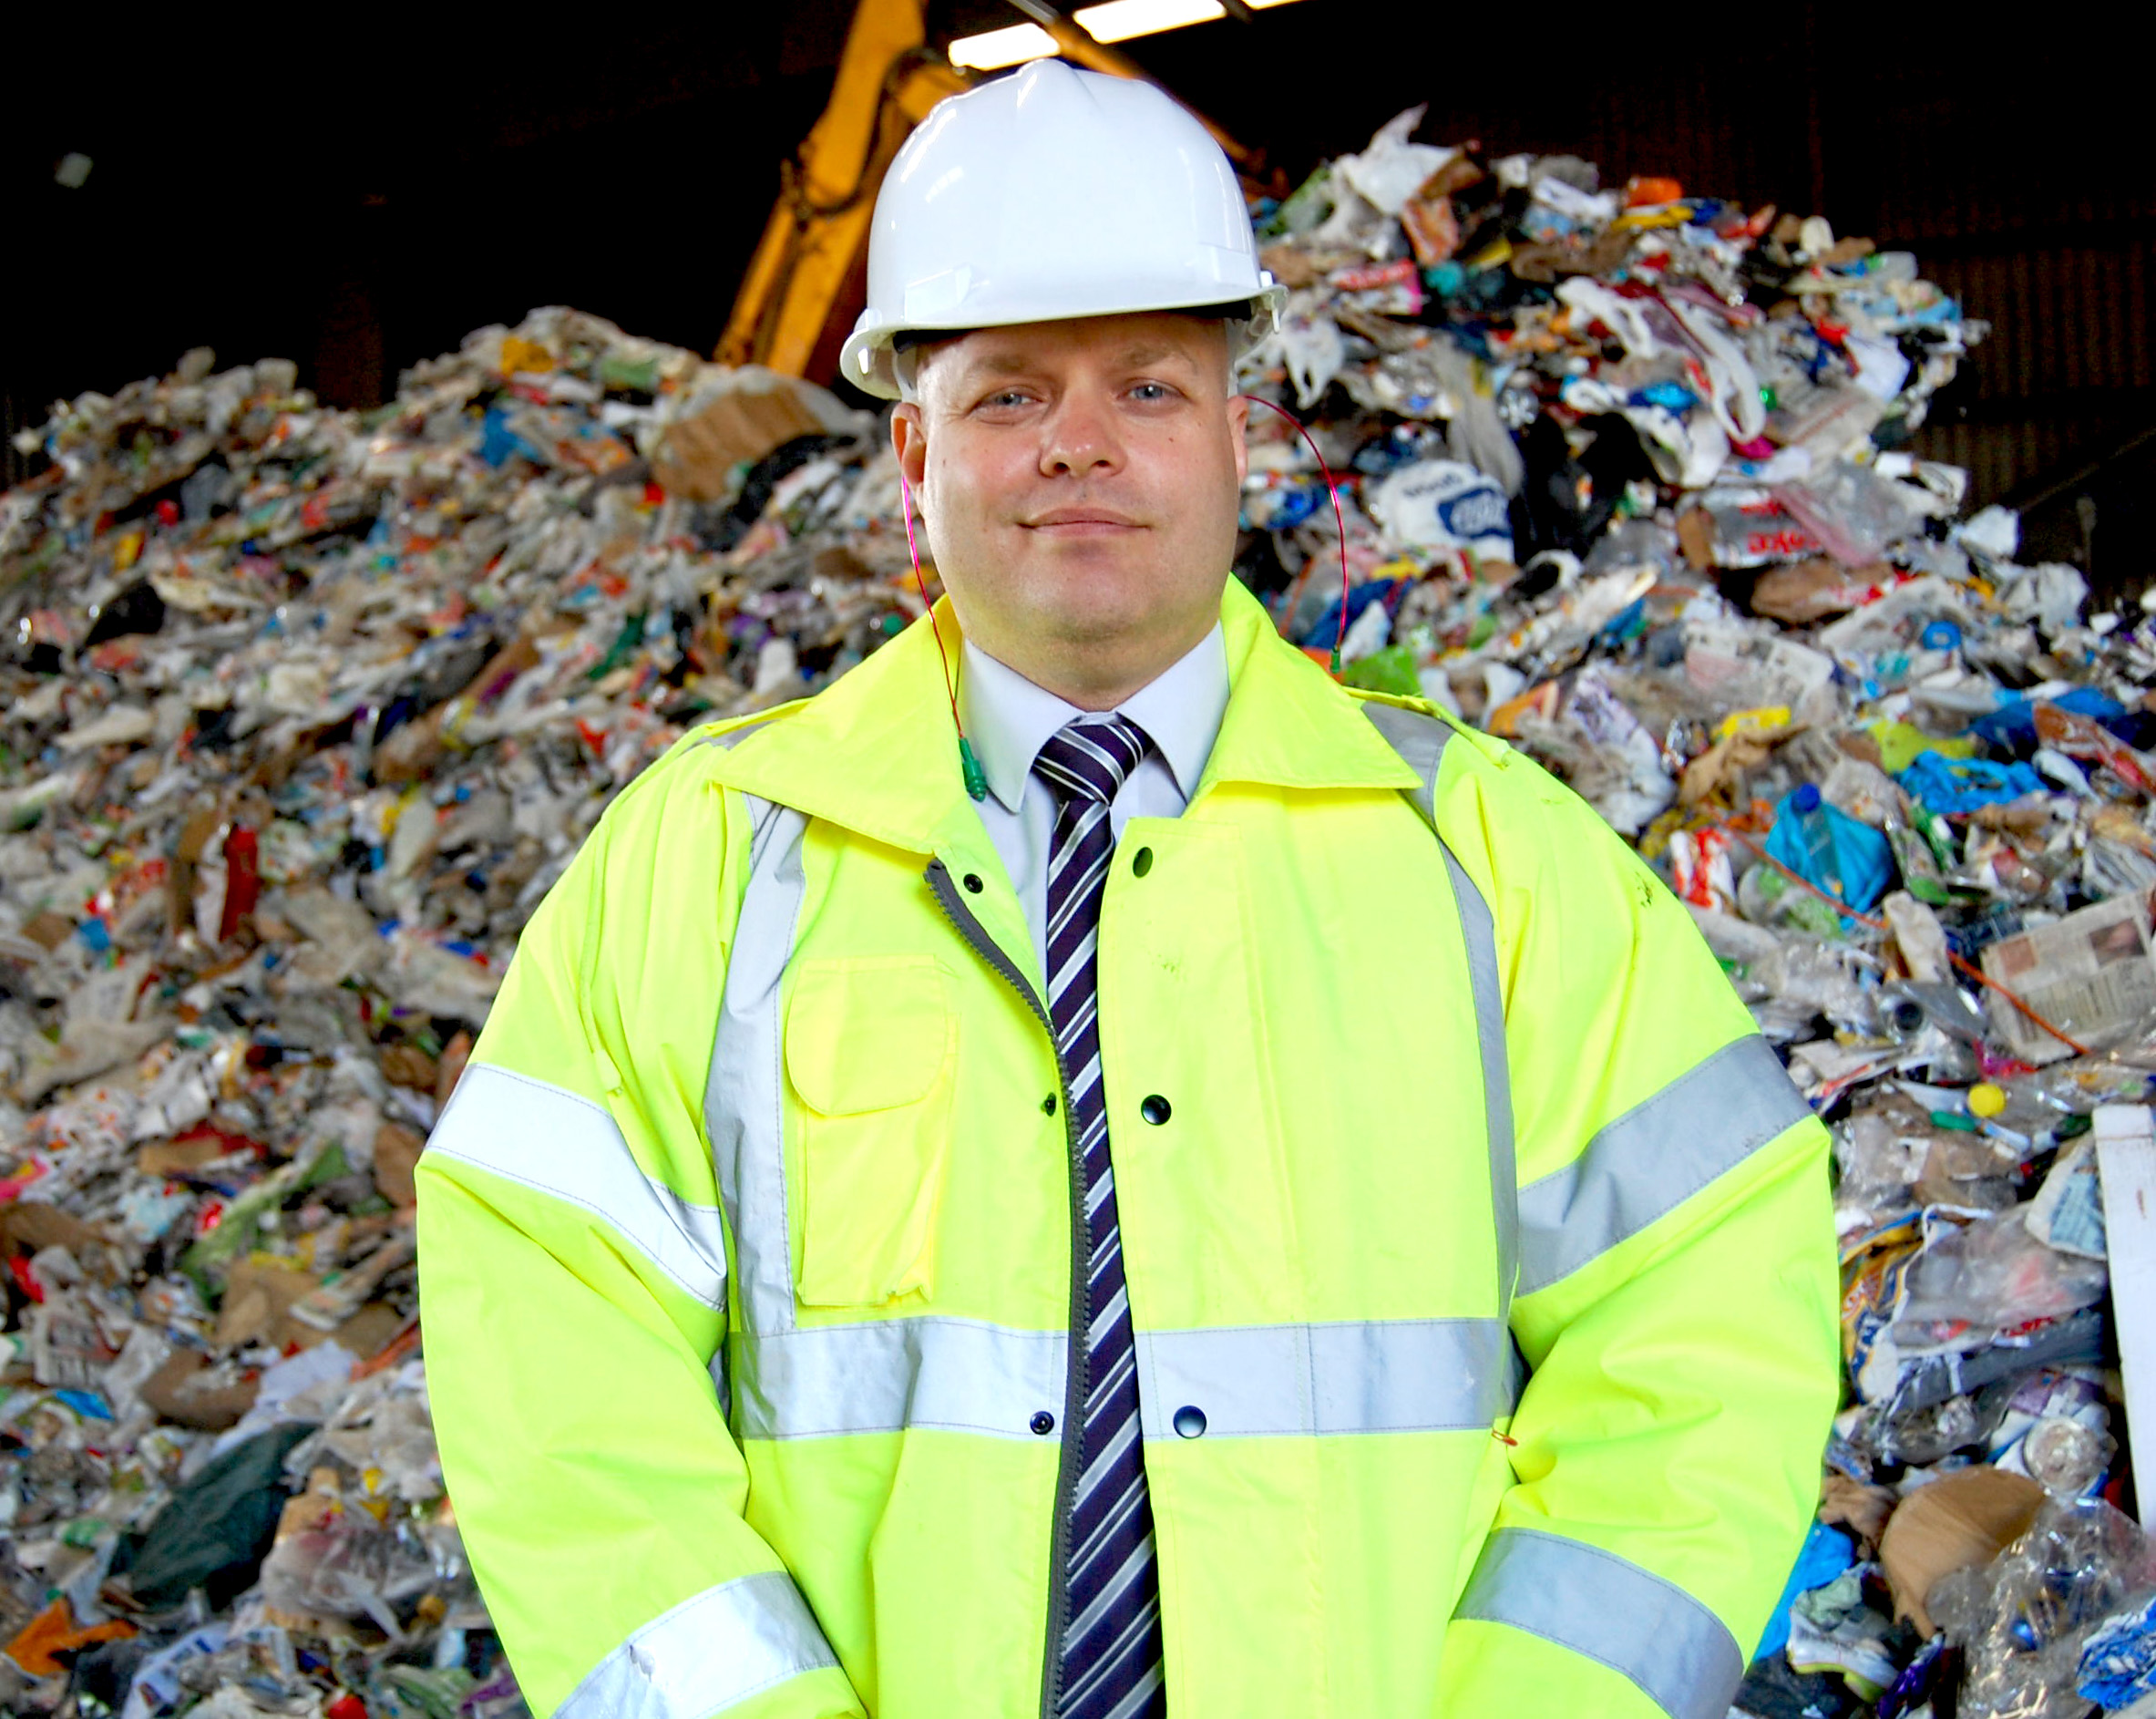 Businesses Urged 'Go Green' to Mark Recycle Week